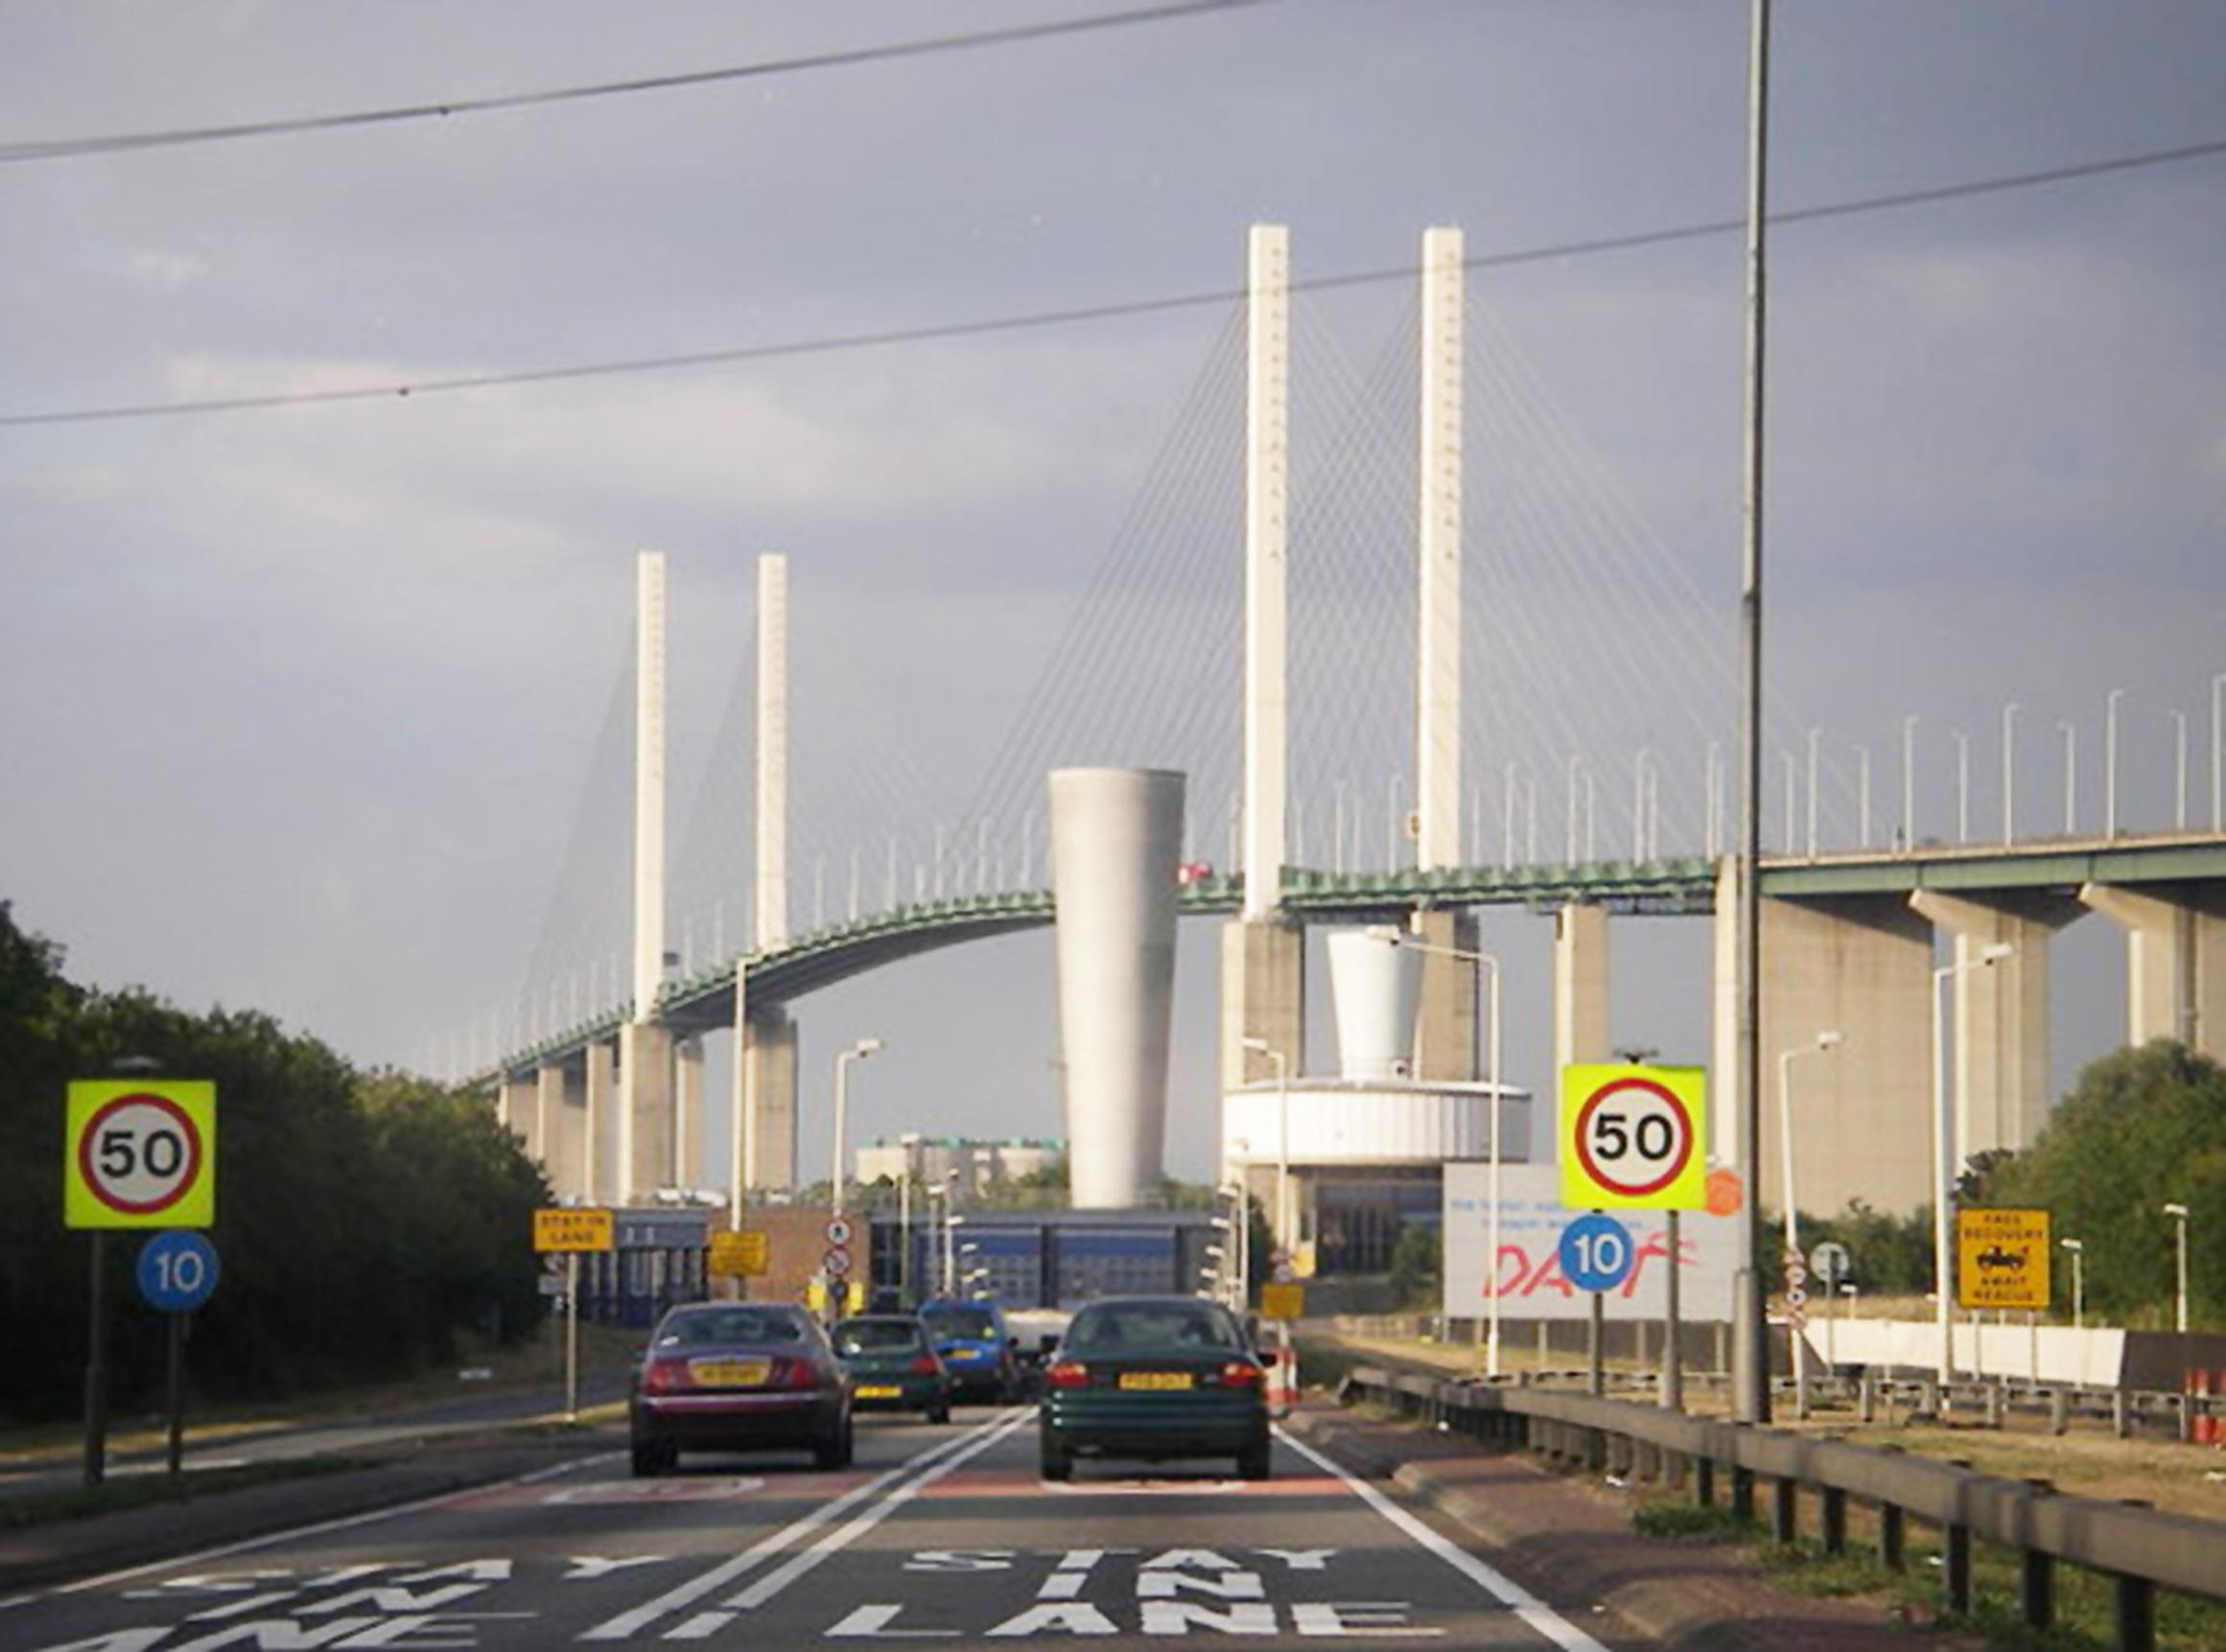 PCNs generate 45 per cent of Dartford Crossing revenues